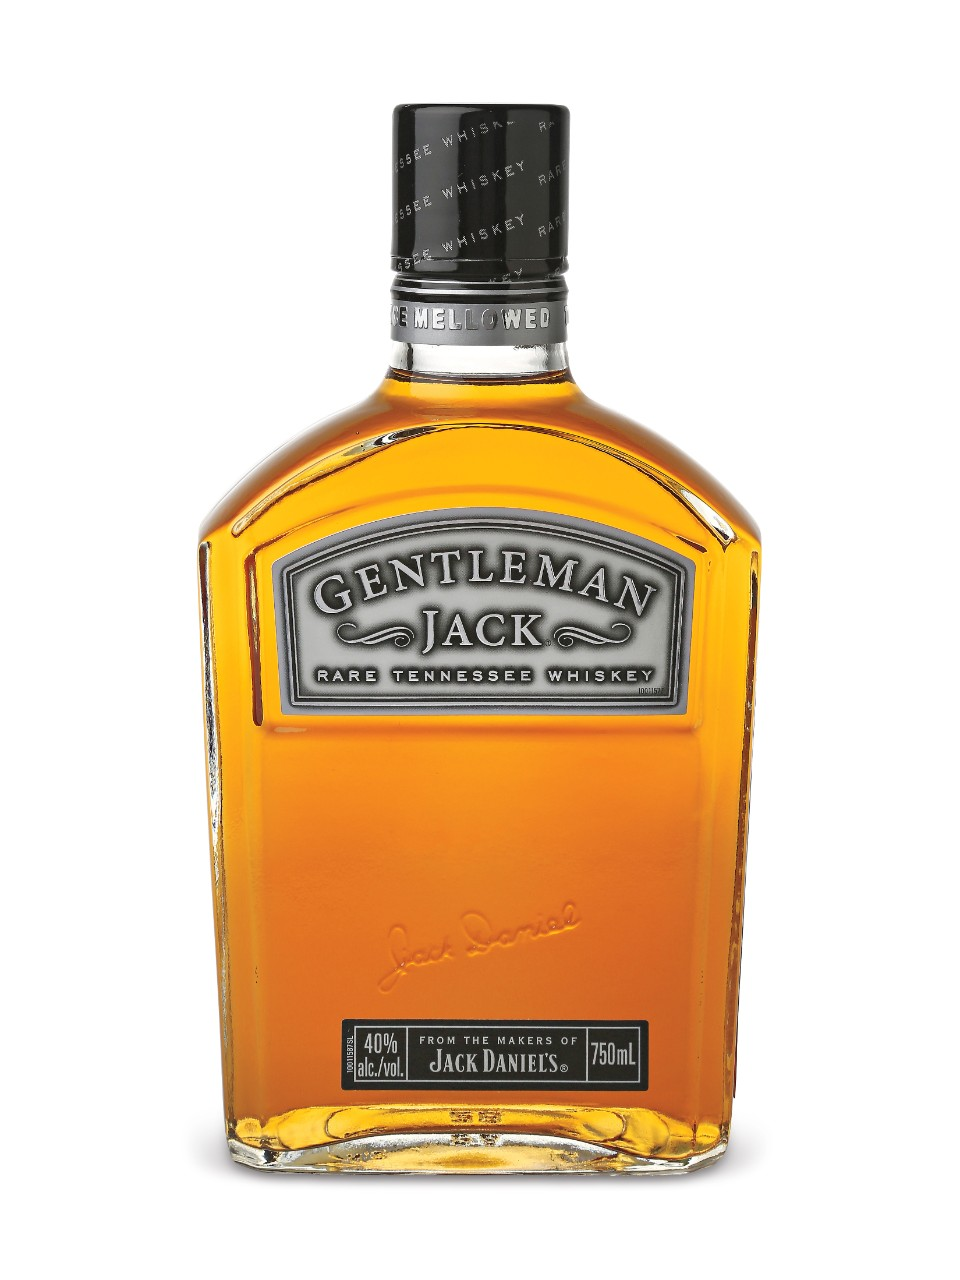 Gentleman Jack Tennessee Whiskey from LCBO